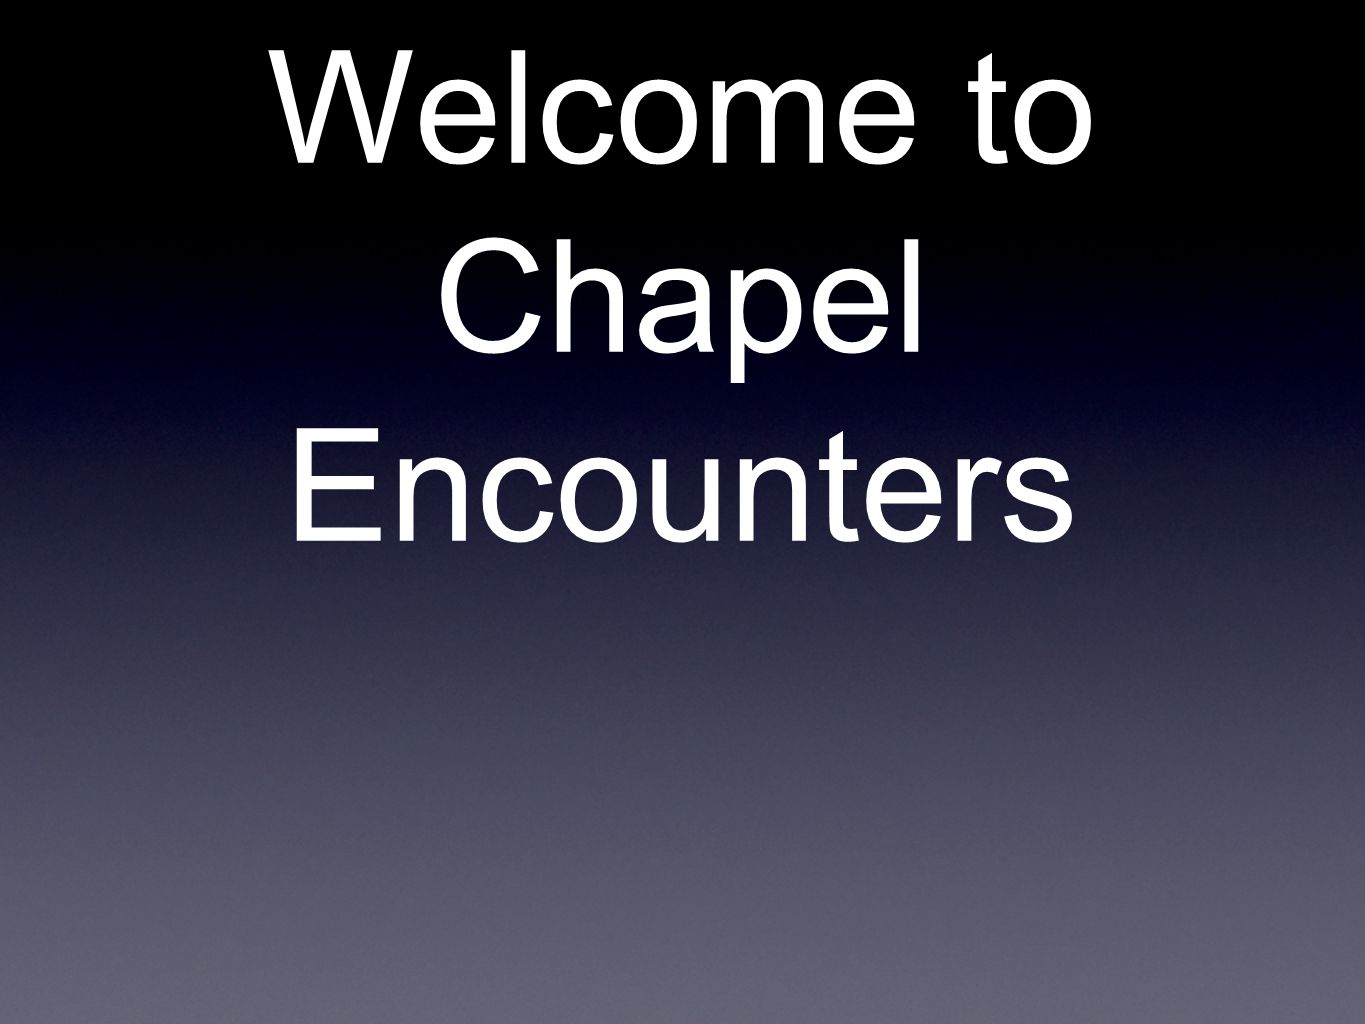 Welcome to Chapel Encounters